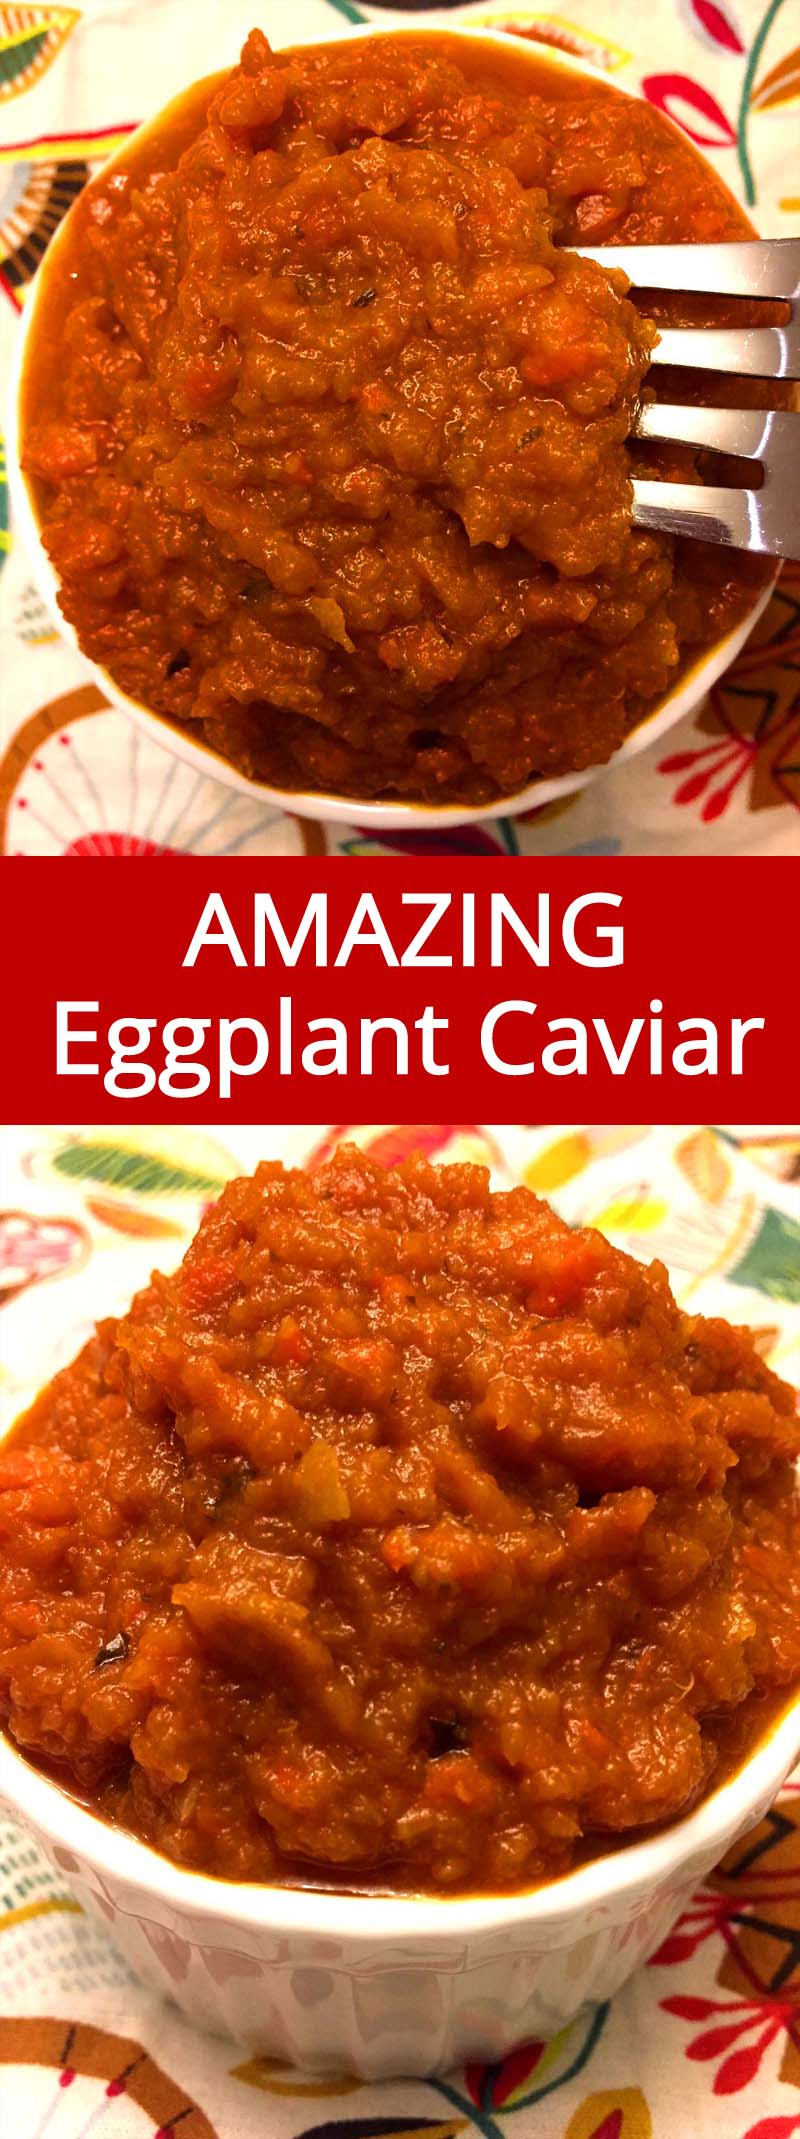 This is an authentic Russian recipe for eggplant caviar spread! This stuff is so delicious and addictive, you just can't stop eating it! Great as a dip, sauce or a spread, I just can't get enough of the eggplant caviar!